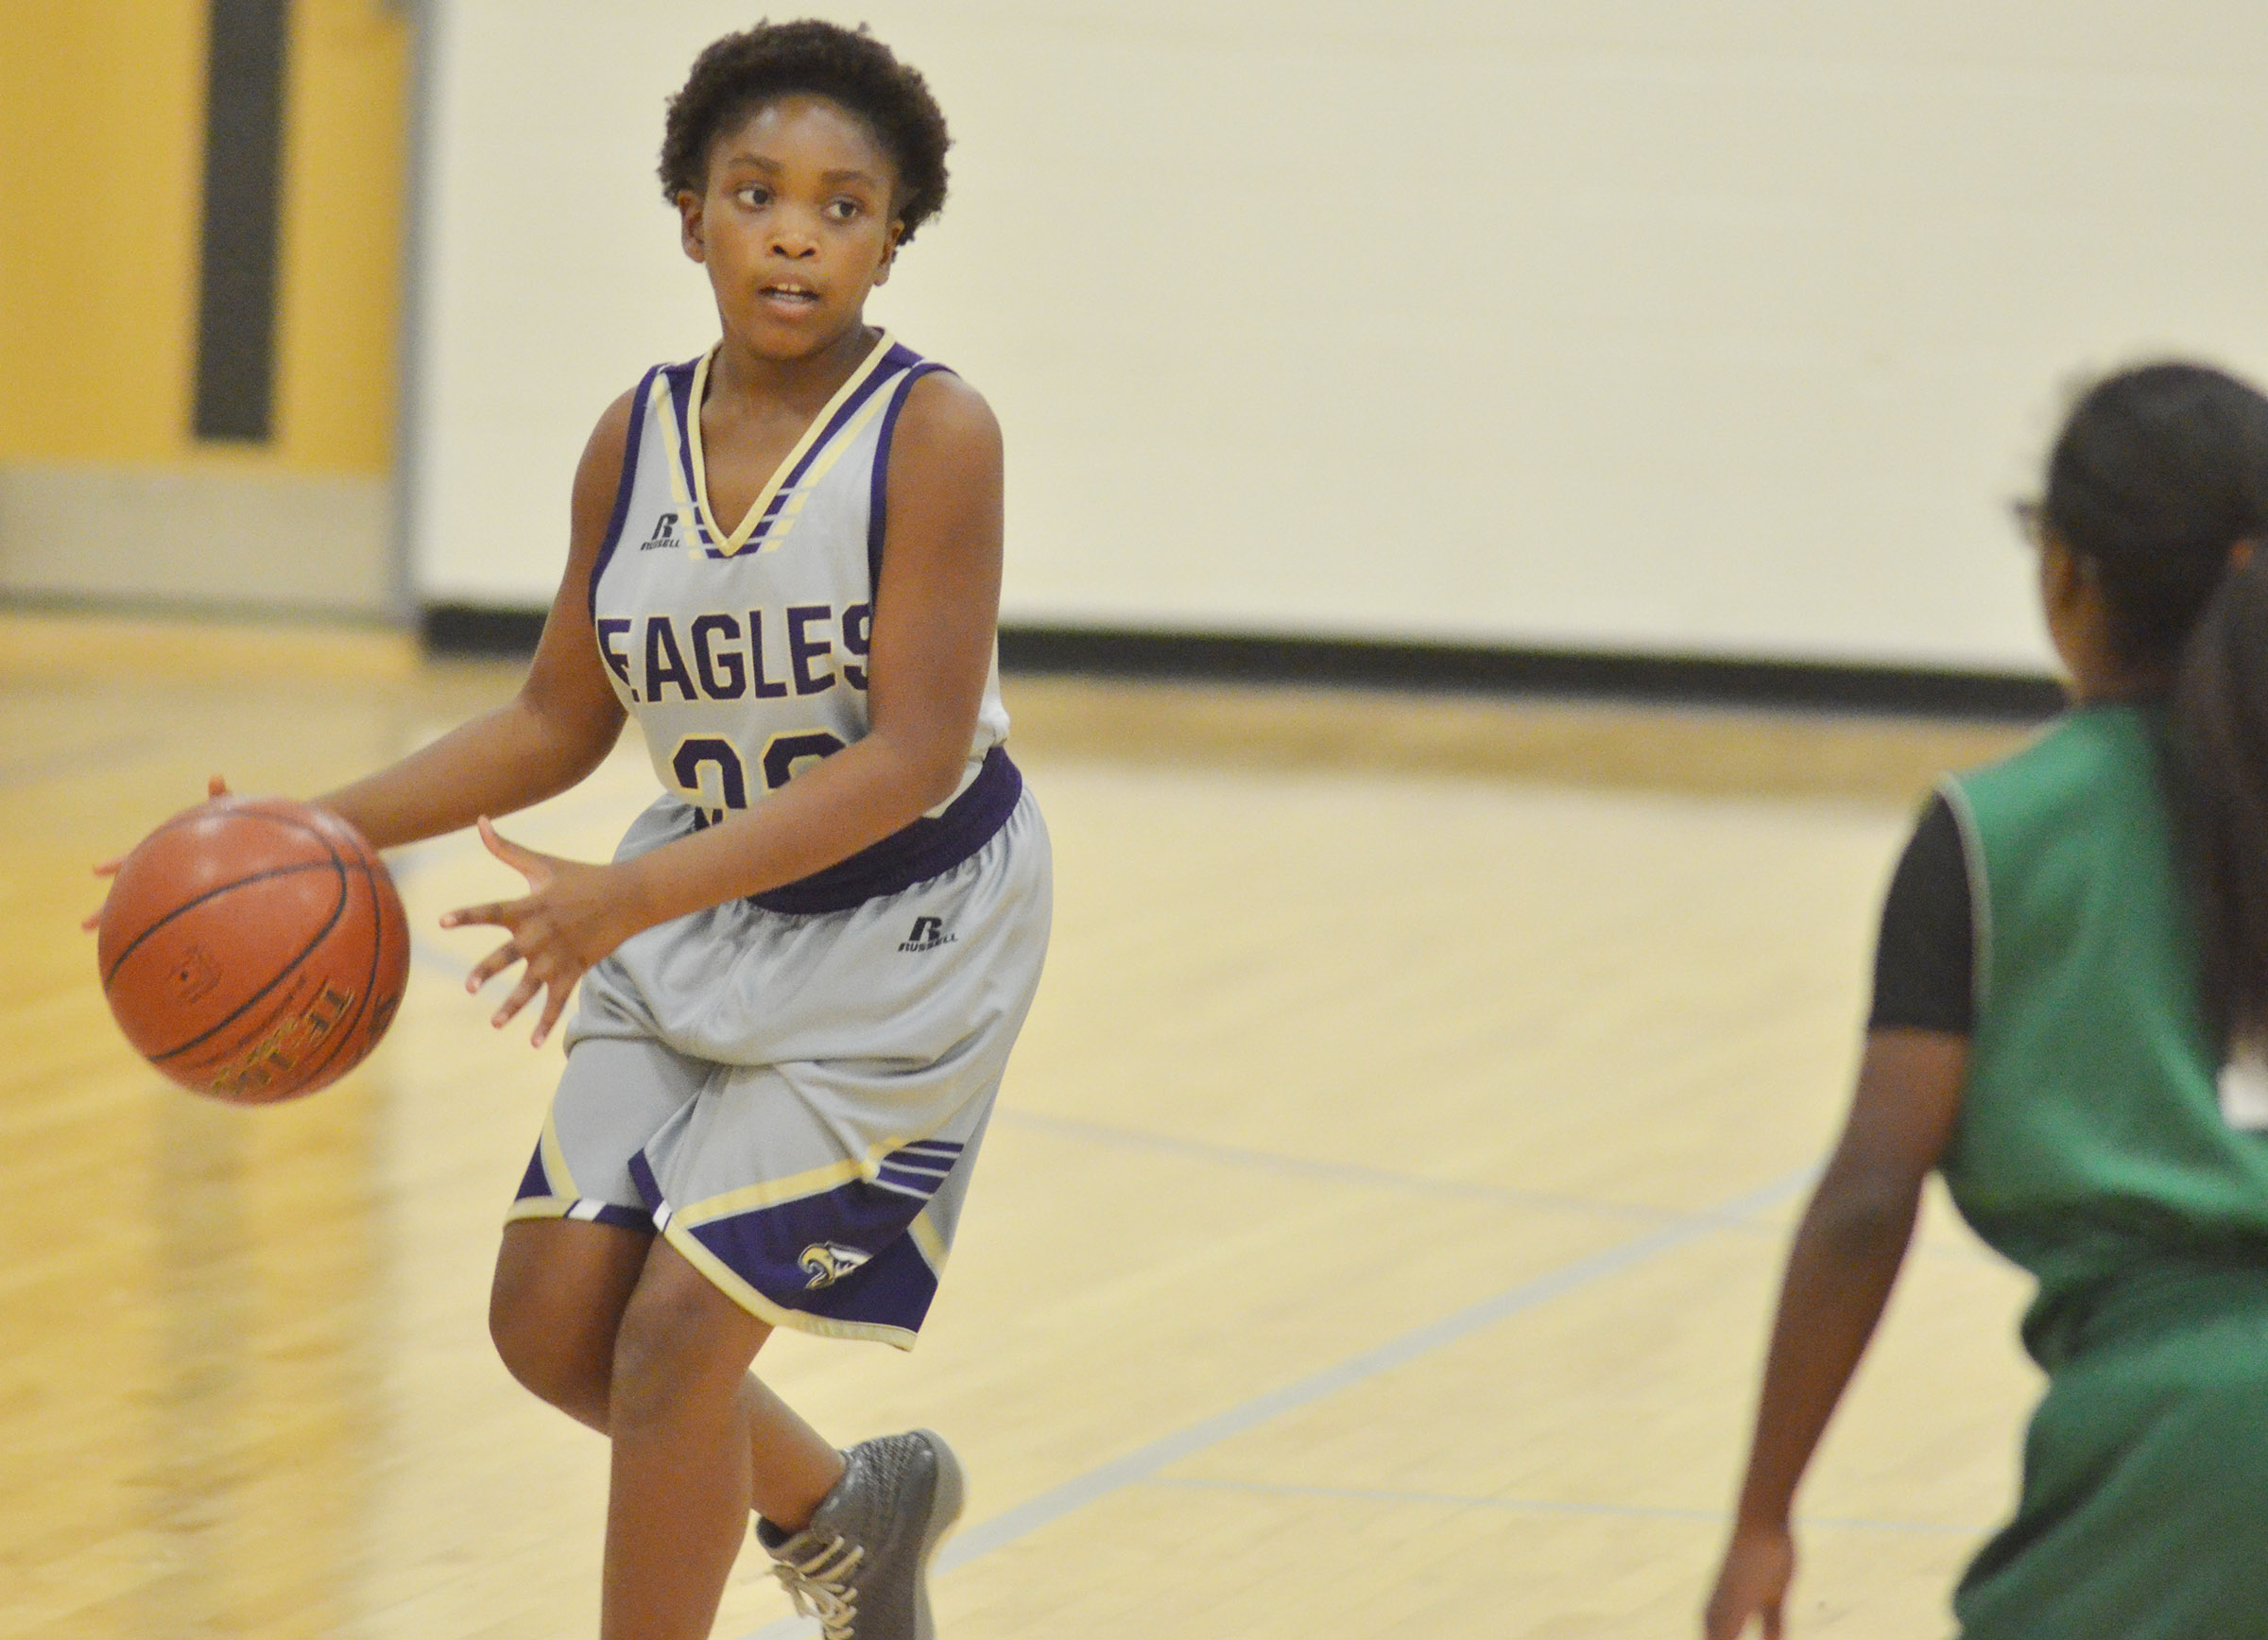 Campbellsville Elementary School fifth-grader Ta'Zaria Owens looks to pass.